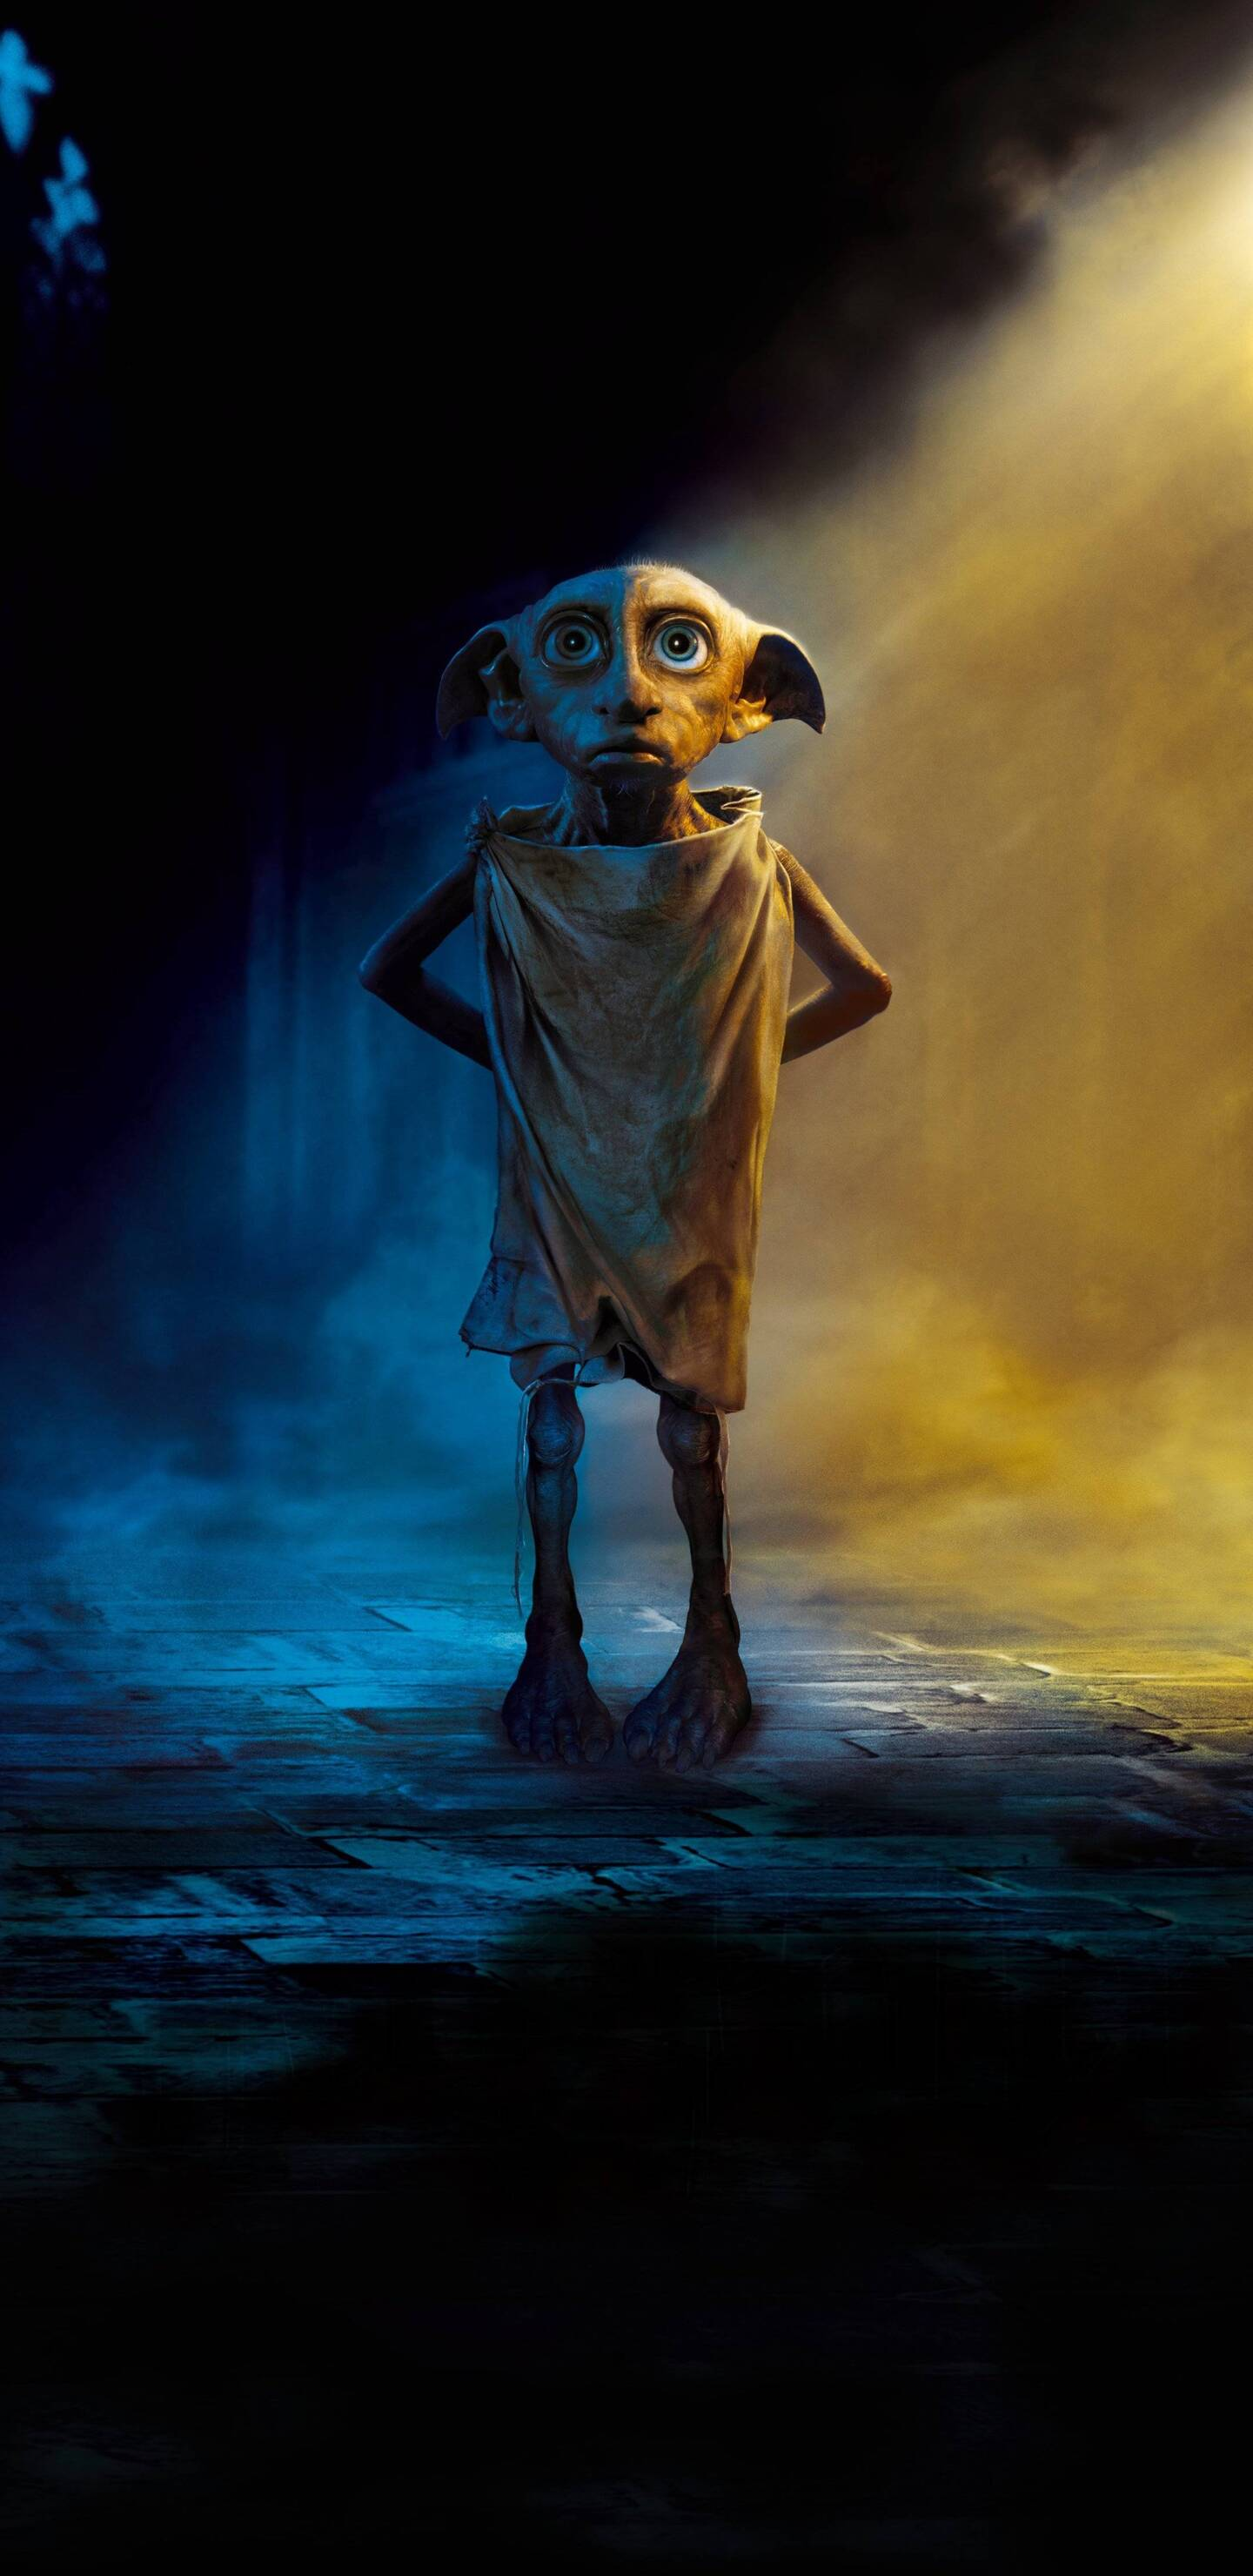 Best Wallpaper Harry Potter Note 5 - dobby-the-house-elf-harry-potter-a9-1440x2960  Photograph_4350.jpg